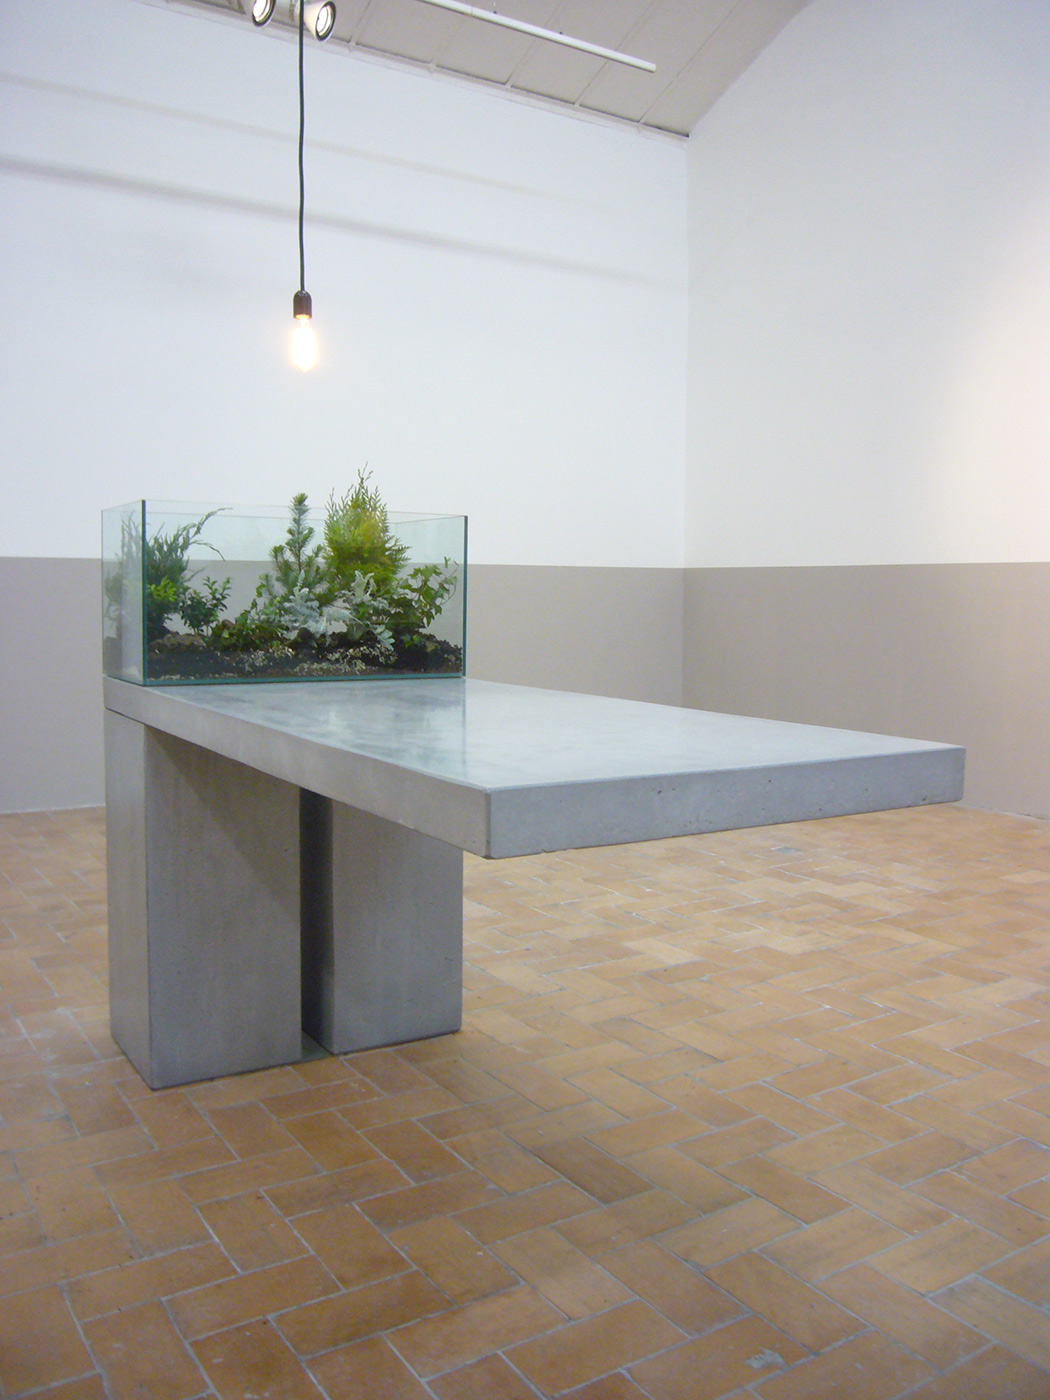 Andrea Blum - Table rock plant, 2013